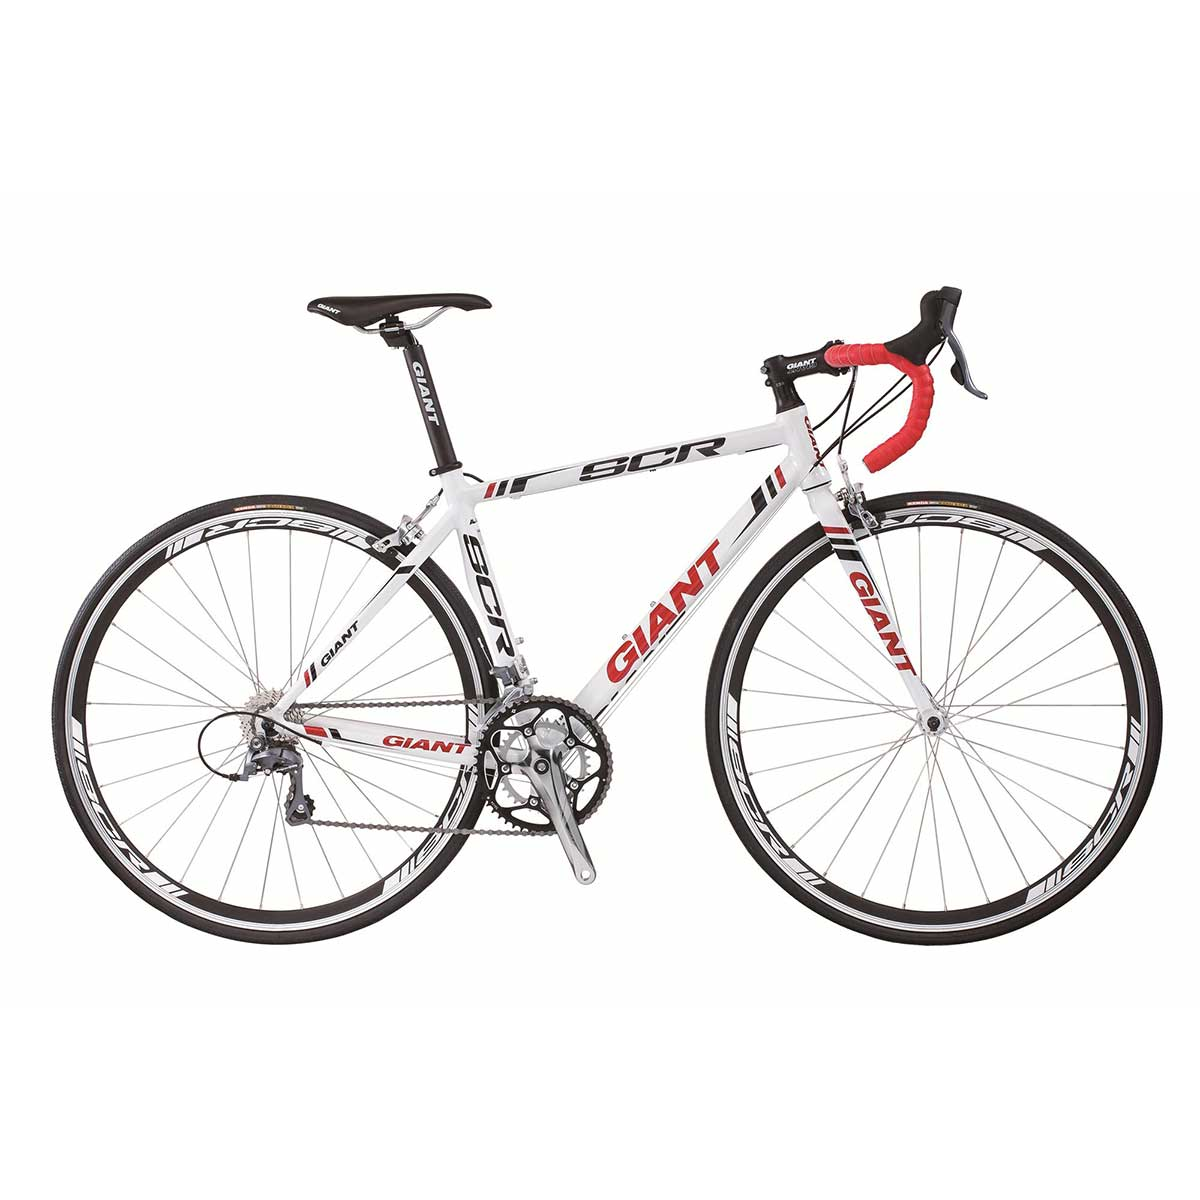 1200x1200 Buy Giant Scr 2 On Road Bicycle Online Indiagiant Bicycles